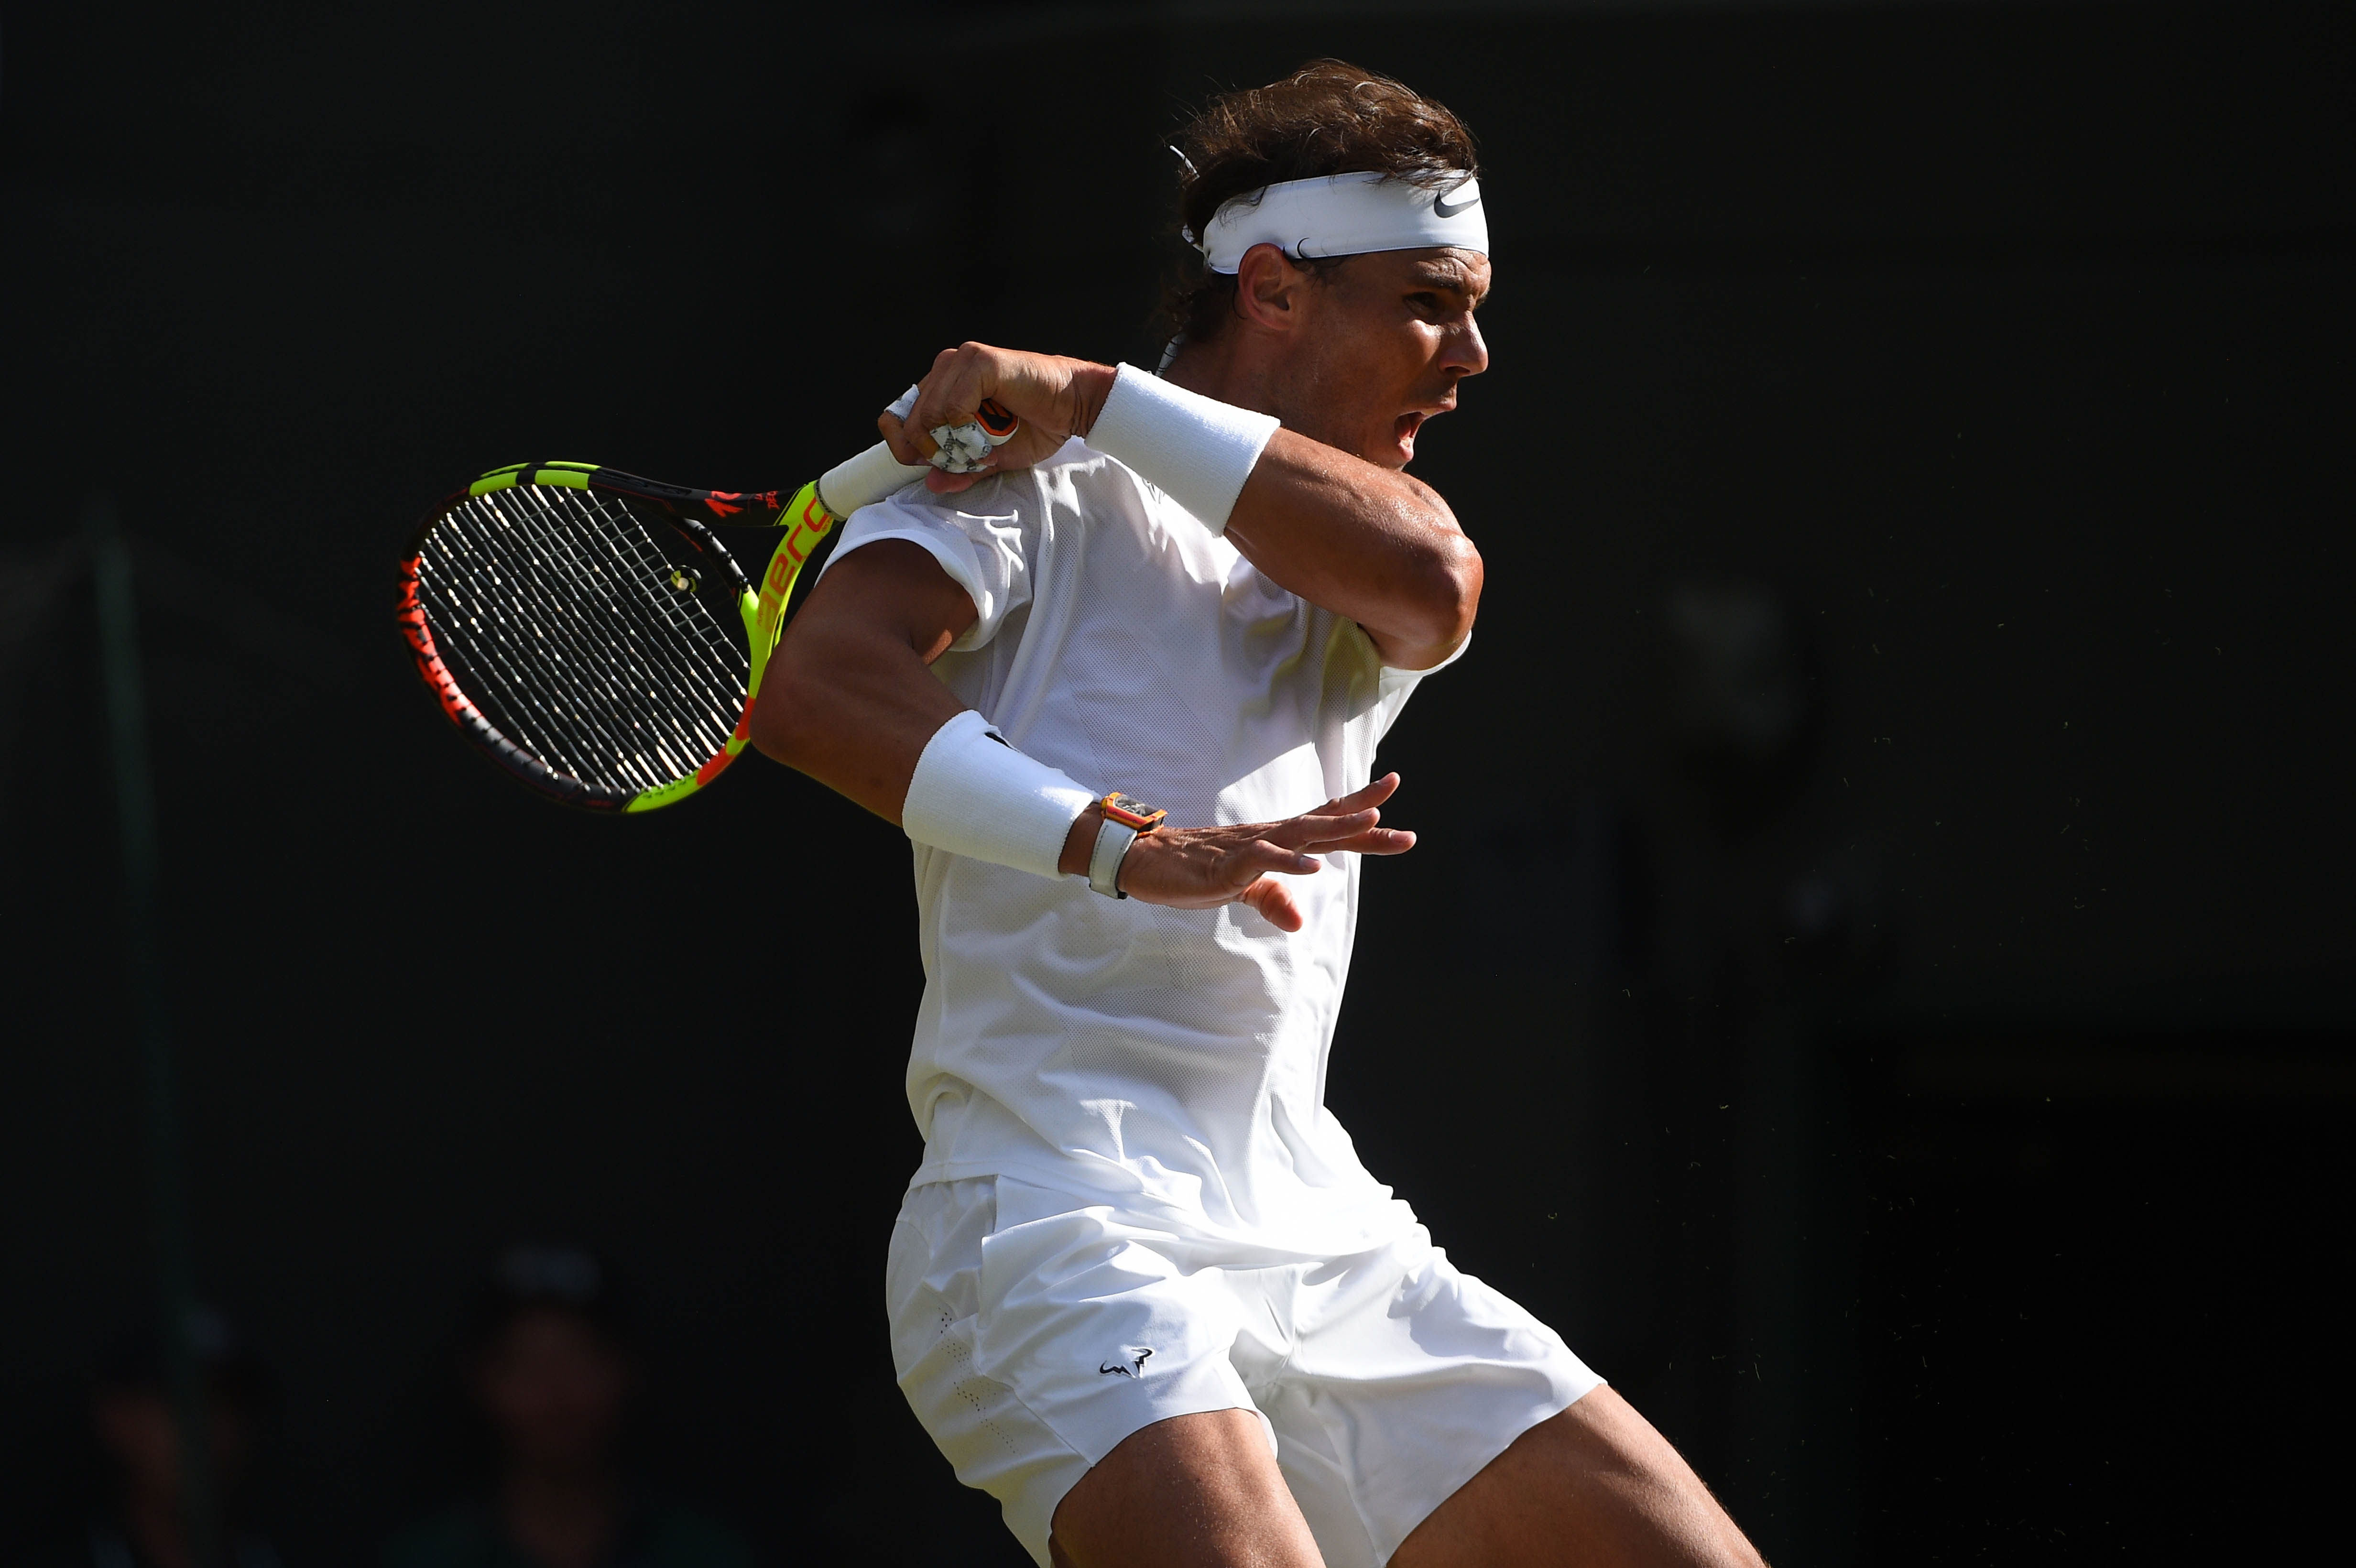 Rafael Nadal hitting a forehand in the light and shadow Wimbledon 2019